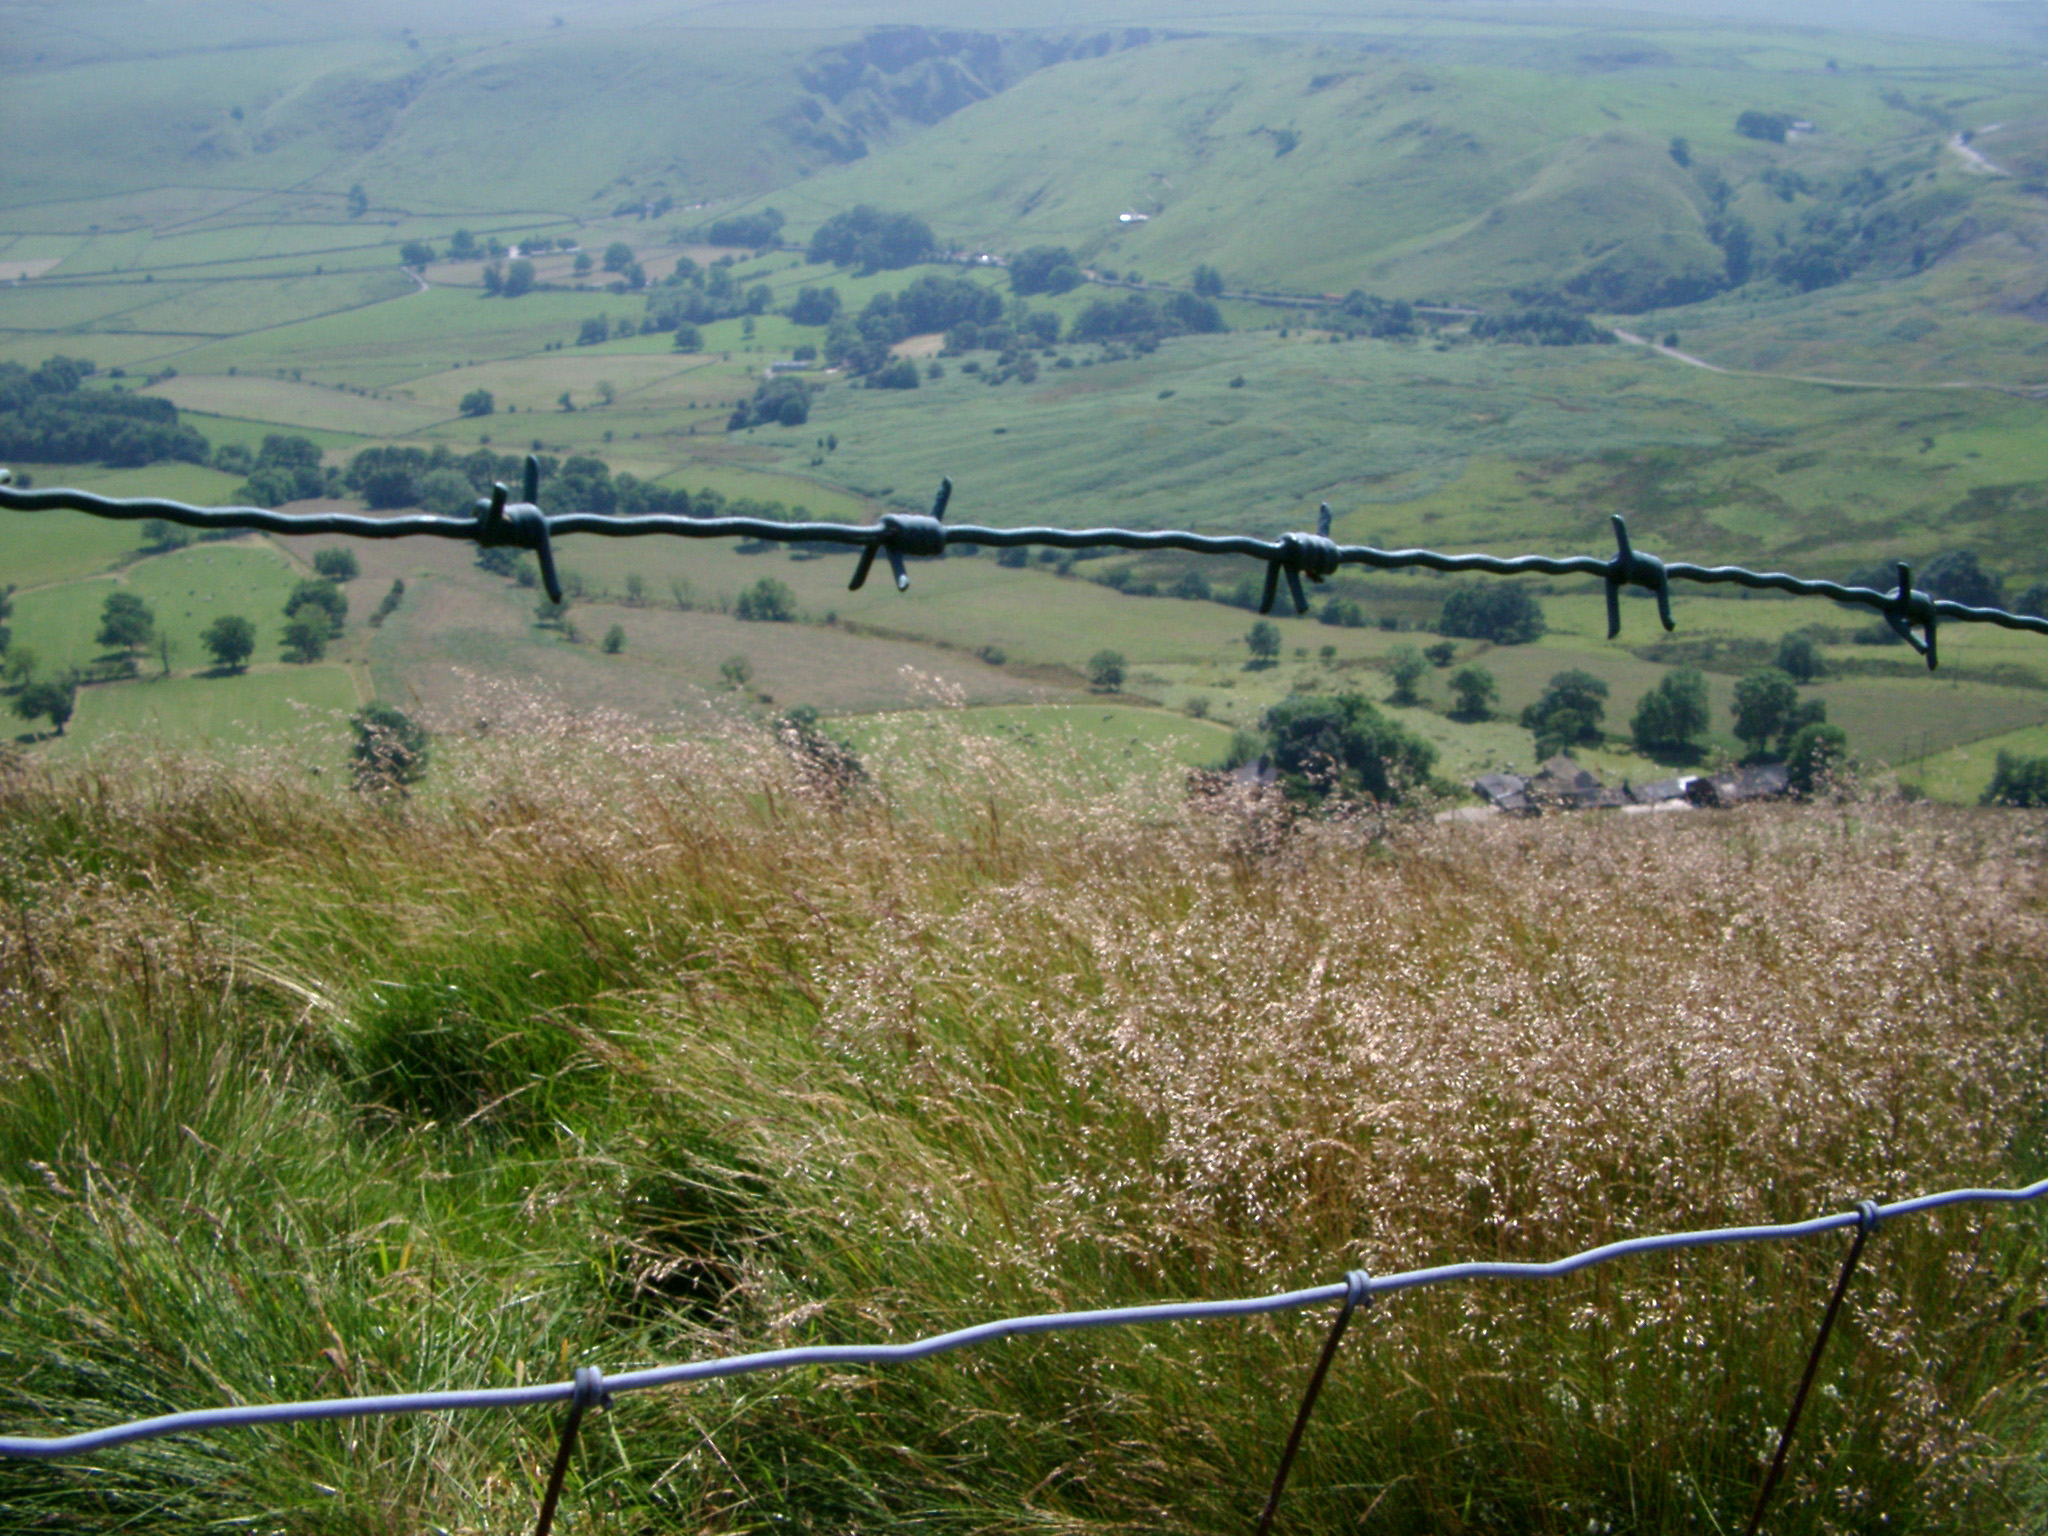 Extensive View of Green Farm of Derbyshire Dales, with Old Barbed Wire Fence, Located in England, United Kingdom.